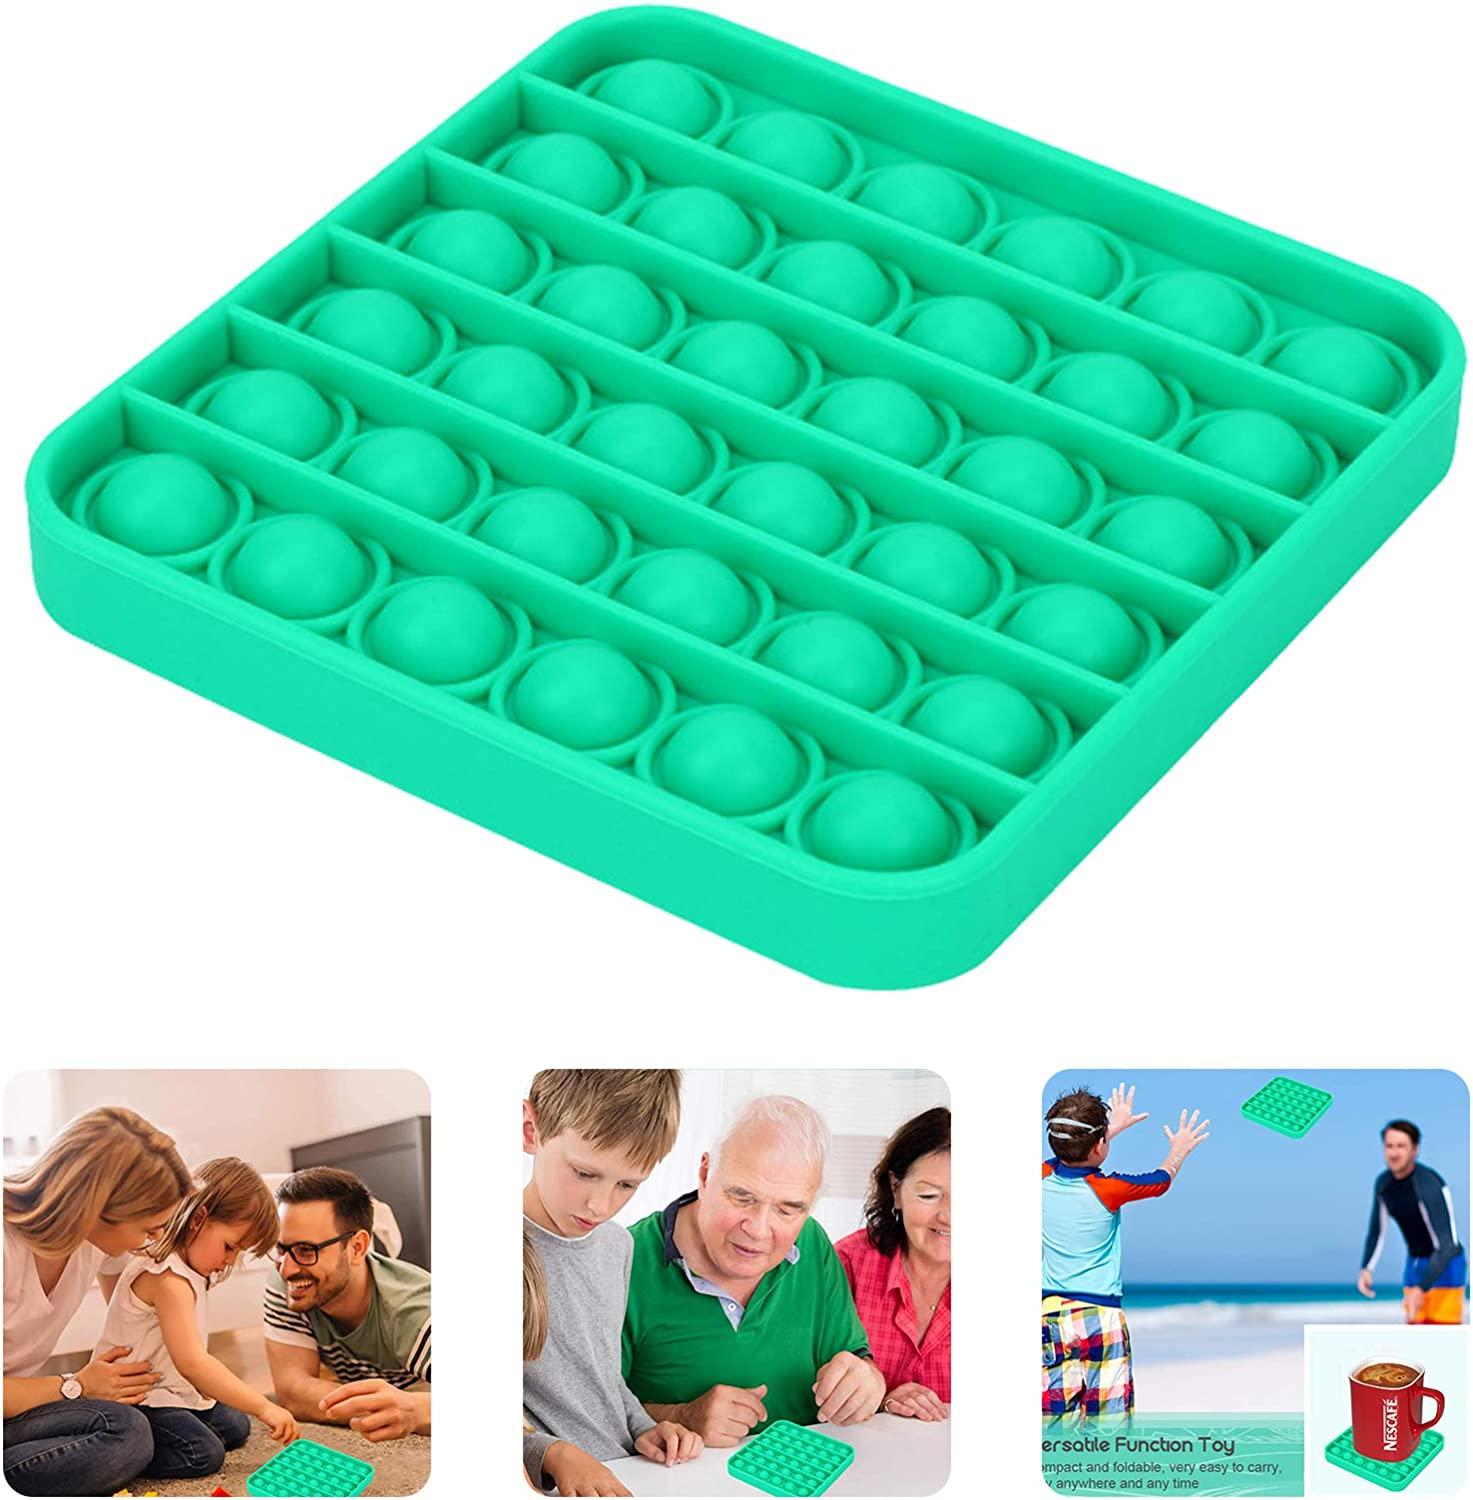 Push Popping Bubble Fidget Sensory Toy, Push It Bubble, Autism ADHD Special Needs Stress Reliever, Popping Games for Kids and Adults, Silicone, Square, Green